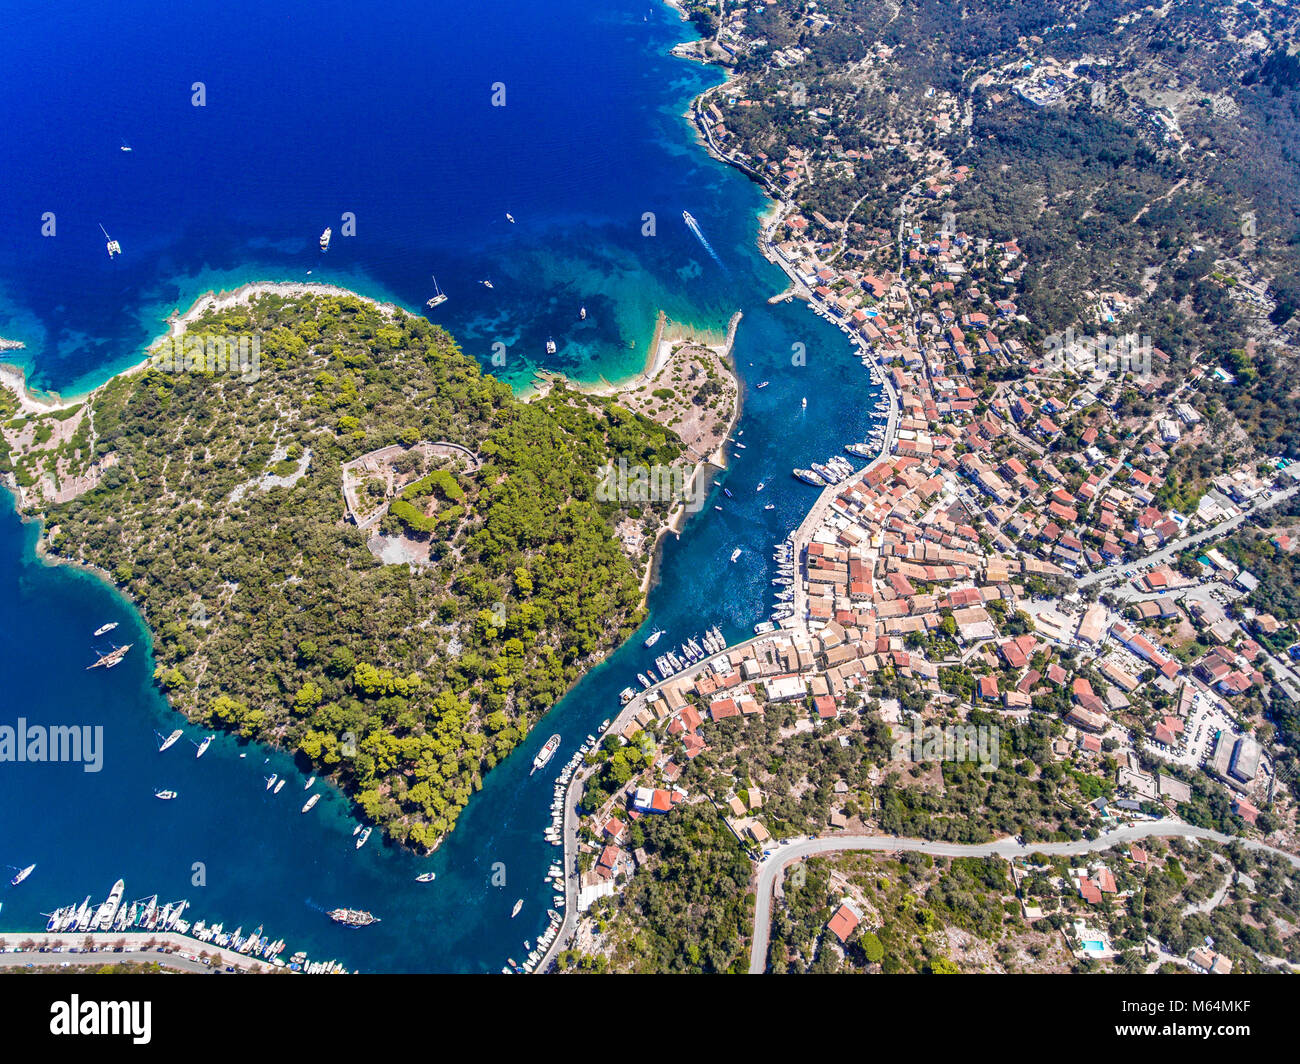 Paxos island from above. Aerial view of the small town Gaios, capital of the island. Stock Photo